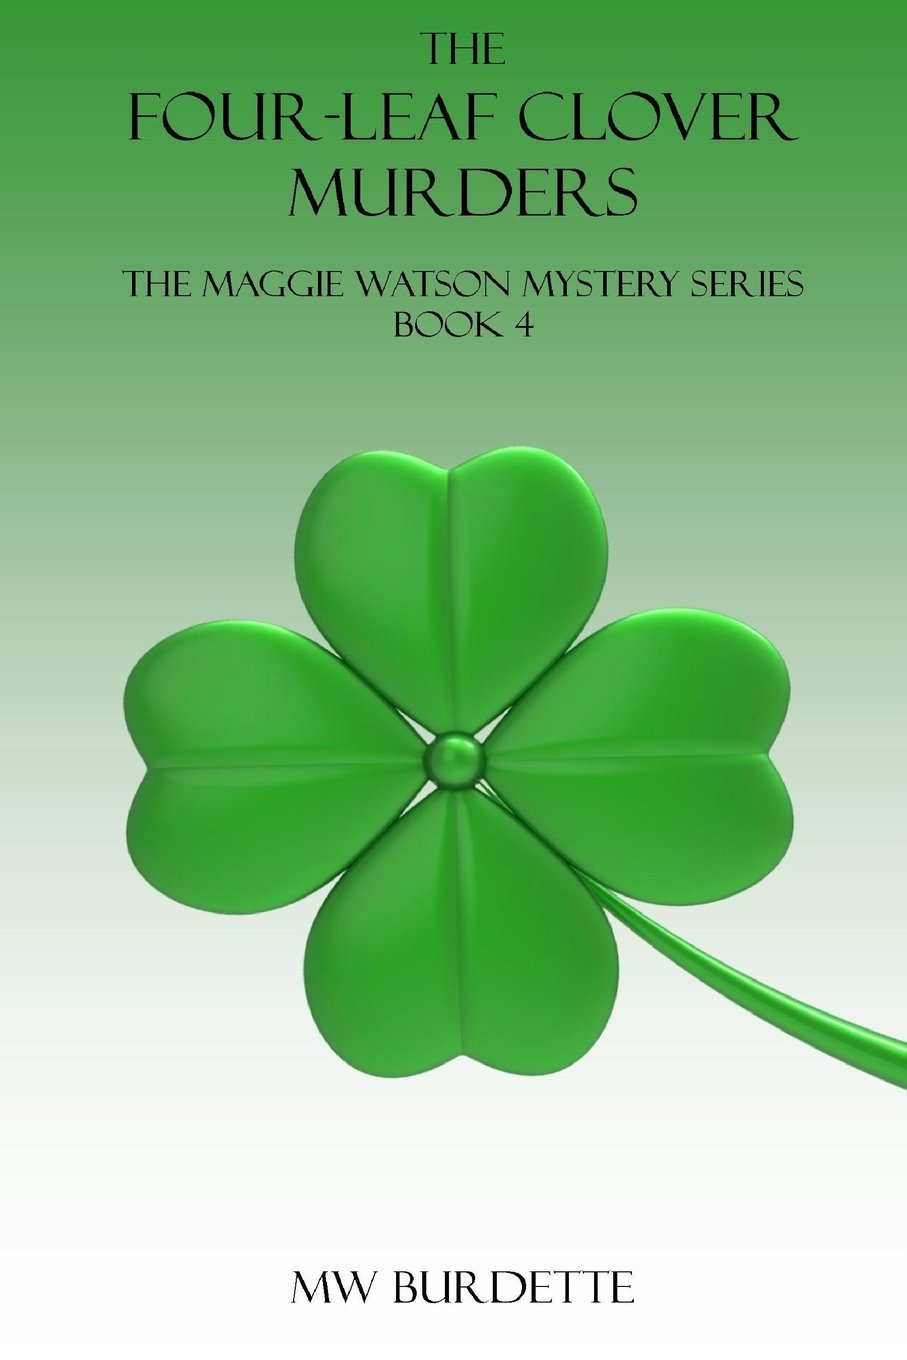 The Four Leaf Clover Murders The Lt Maggie Watson Murder Series